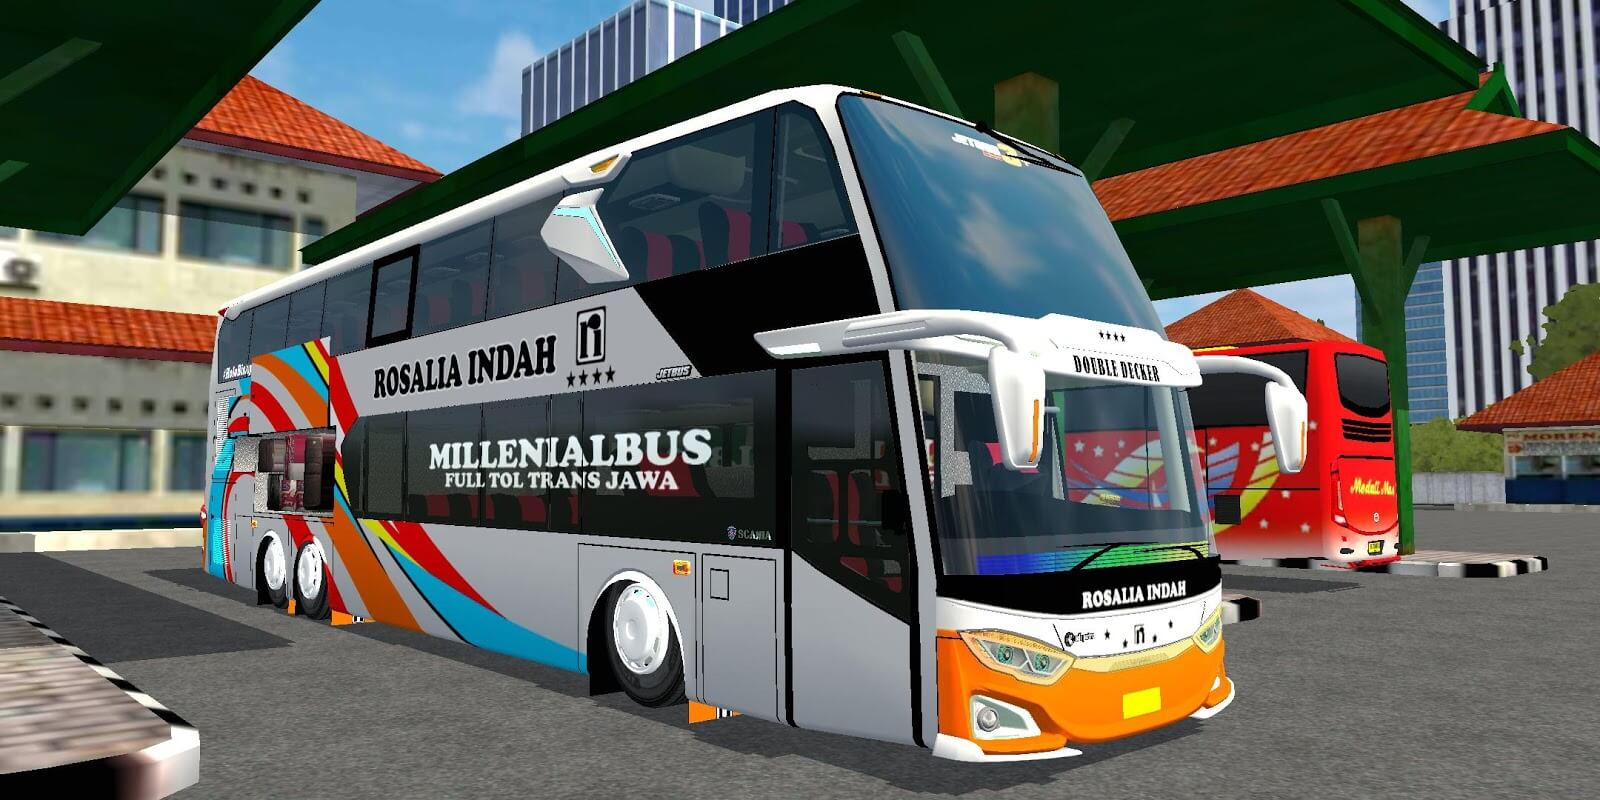 JetBus3+ SDD Voyager Mod BUSSID, Mod BUSSID JetBus3+ SDD Voyager, Mdo JetBus3+ SDD Voyager BUSSID, BUSSID Bus Mod, JB3+ SDD Voyager bus mod BUSSID, SGCArena, Md Creation